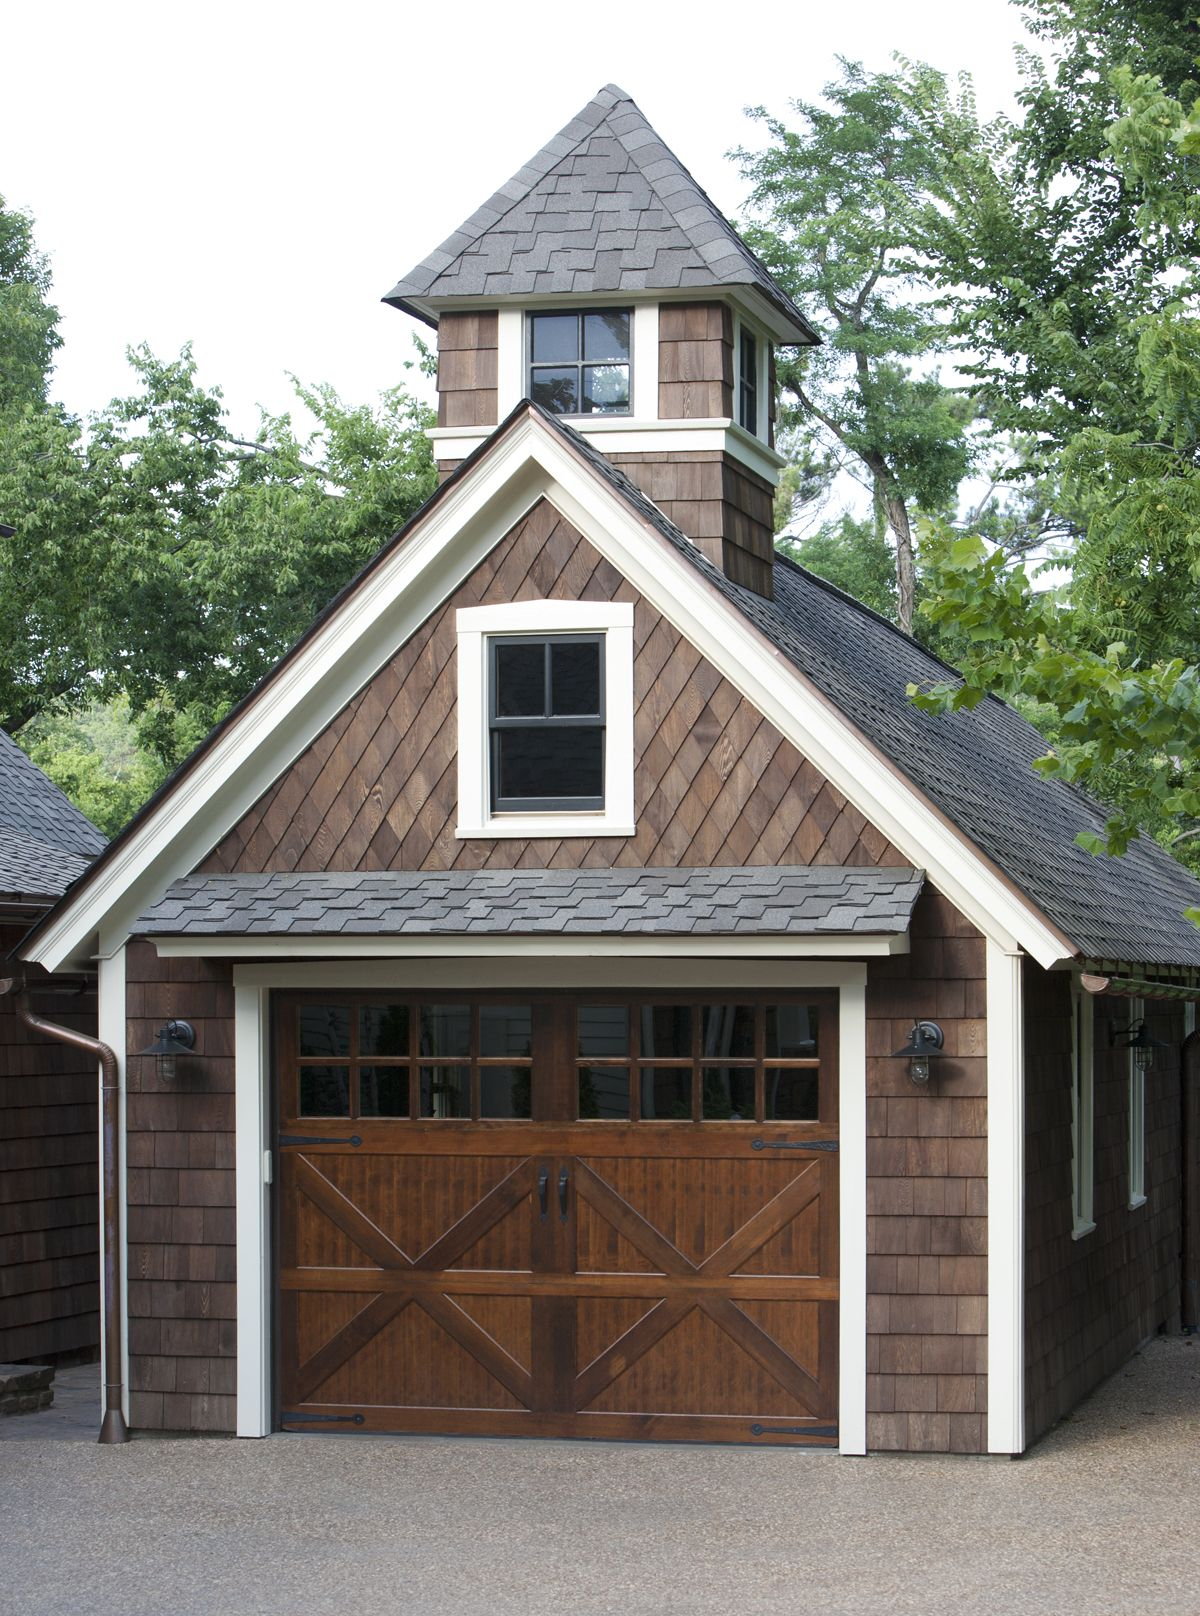 Exterior, Cedar Shakes Above Garage Door Natural Wood Varnished Clopay Garage  Door Wrought Iron Door Pulls Black Metal Lantern Lamp As Outdoor Lighting  ...